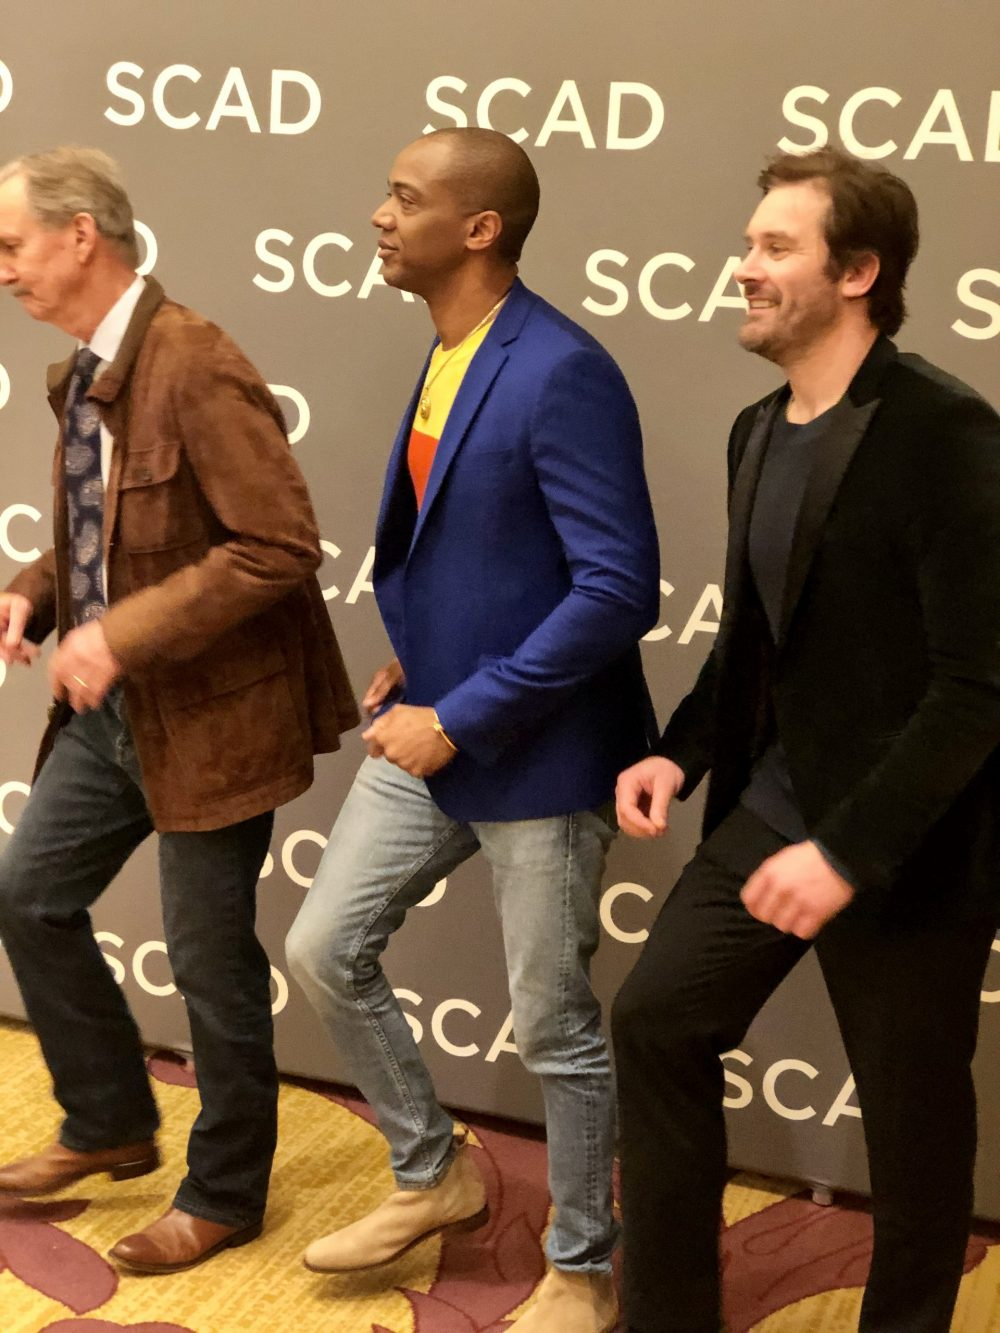 Actors Michael O'Neill, J. August Richards and Clive Standen at SCAD aTVfest 2020 hoto credit: Tracey Phillipps/So Many Shows